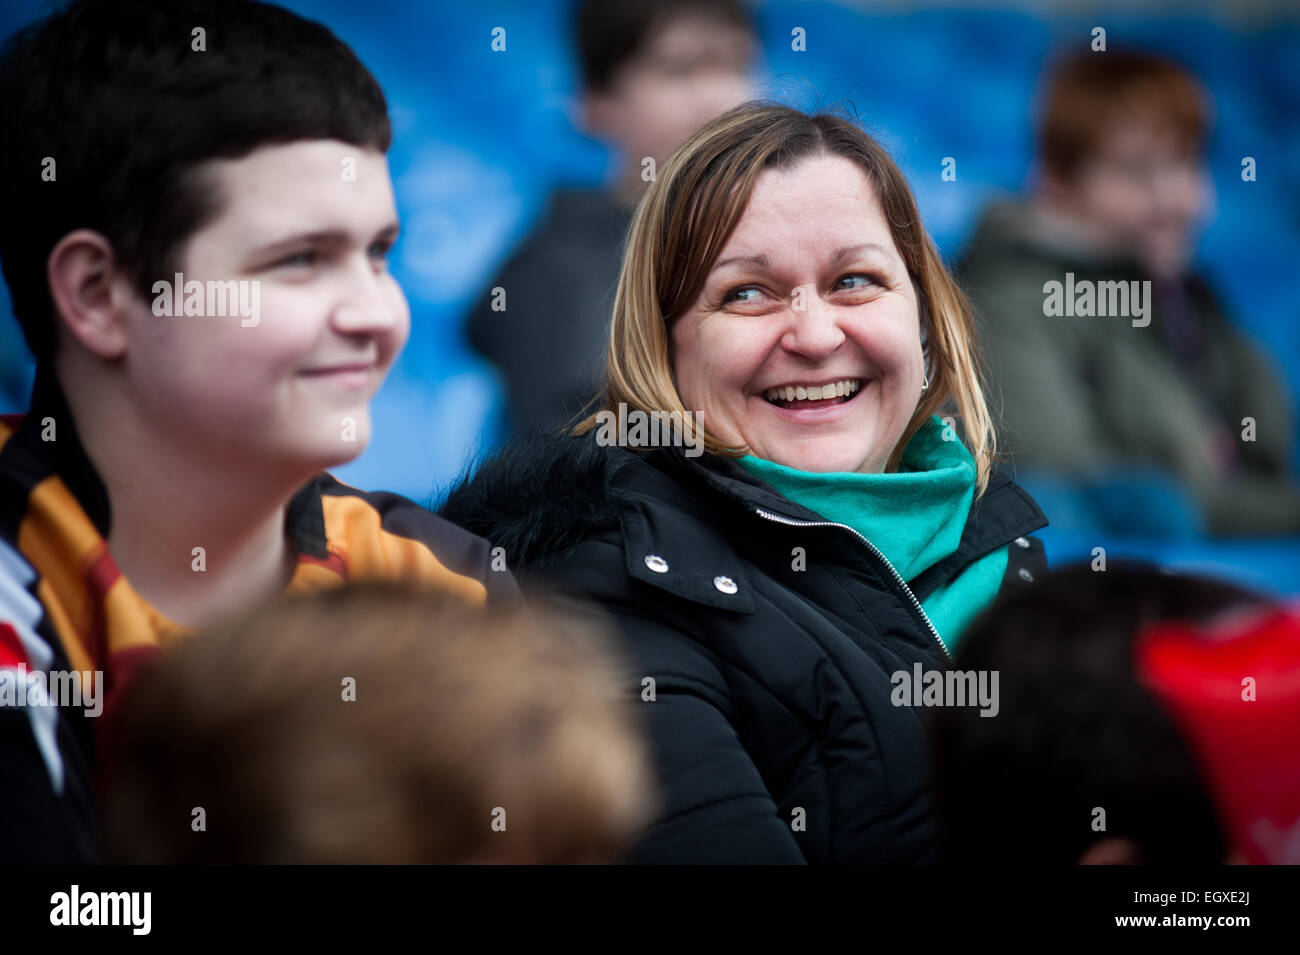 family at London Welsh v London Irish Aviva Premiership Rugby match on St Davids Day (1 March 2015) - Stock Image